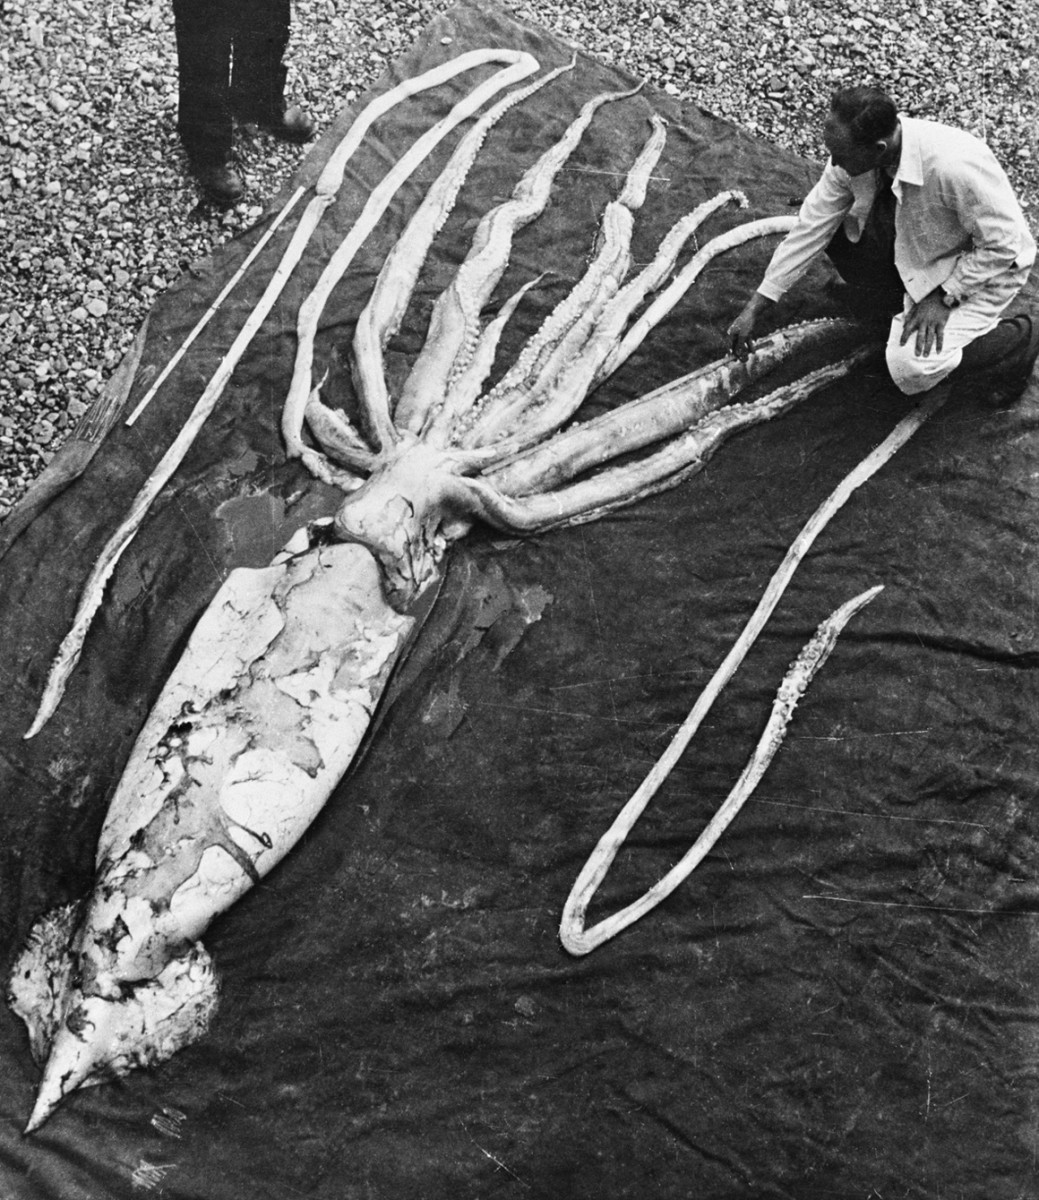 The imaginary giant squid, caught for real in a fishing net in 1954. Here it is being measured by scientists.